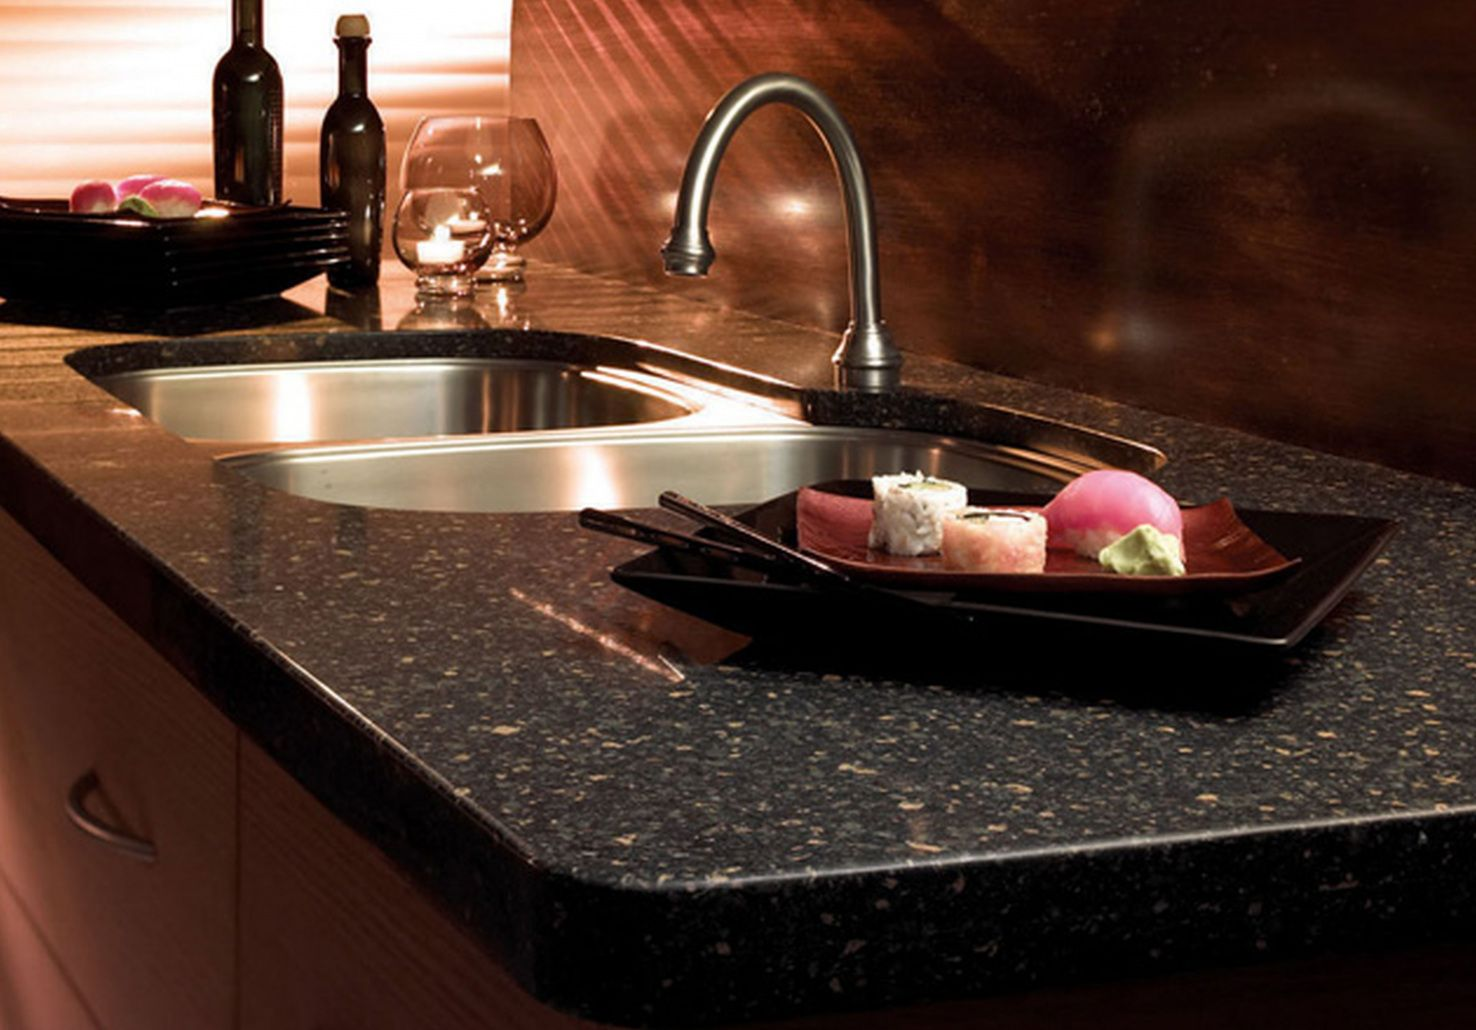 2018 home depot granite kitchen countertops kitchen shelf display ideas check more at http